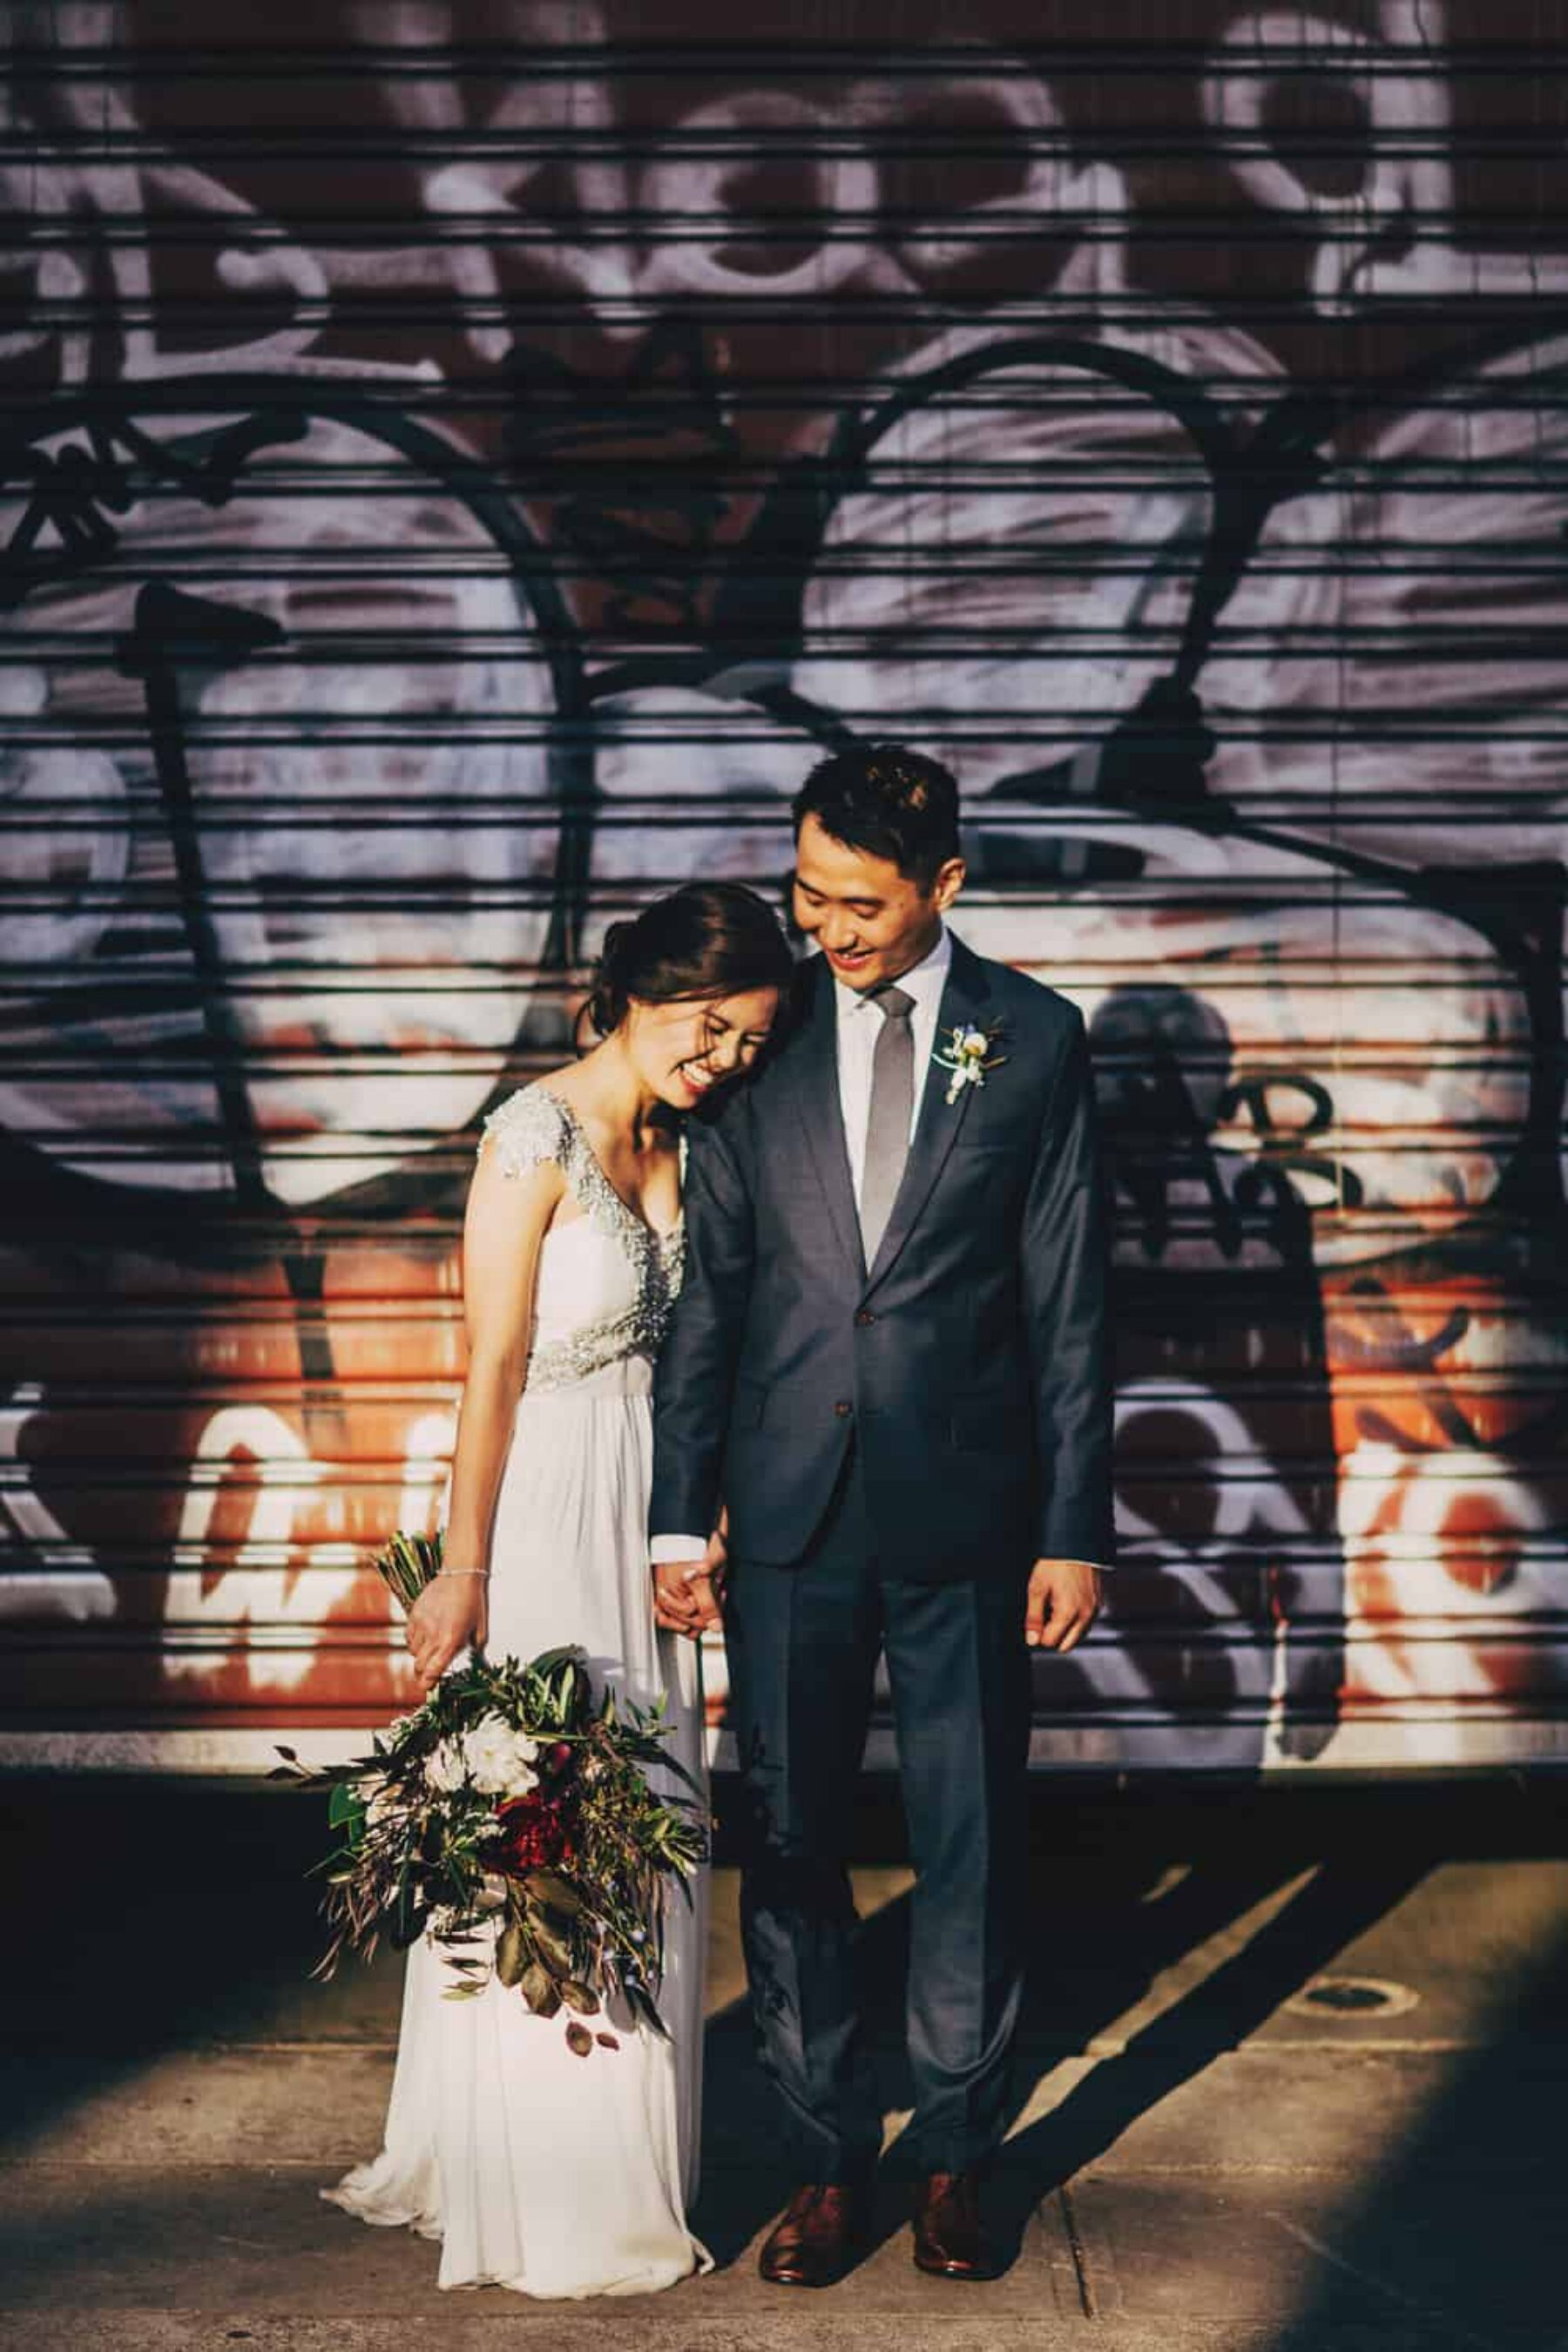 Surprise warehouse wedding in Fitzroy - The Robertsons Photography